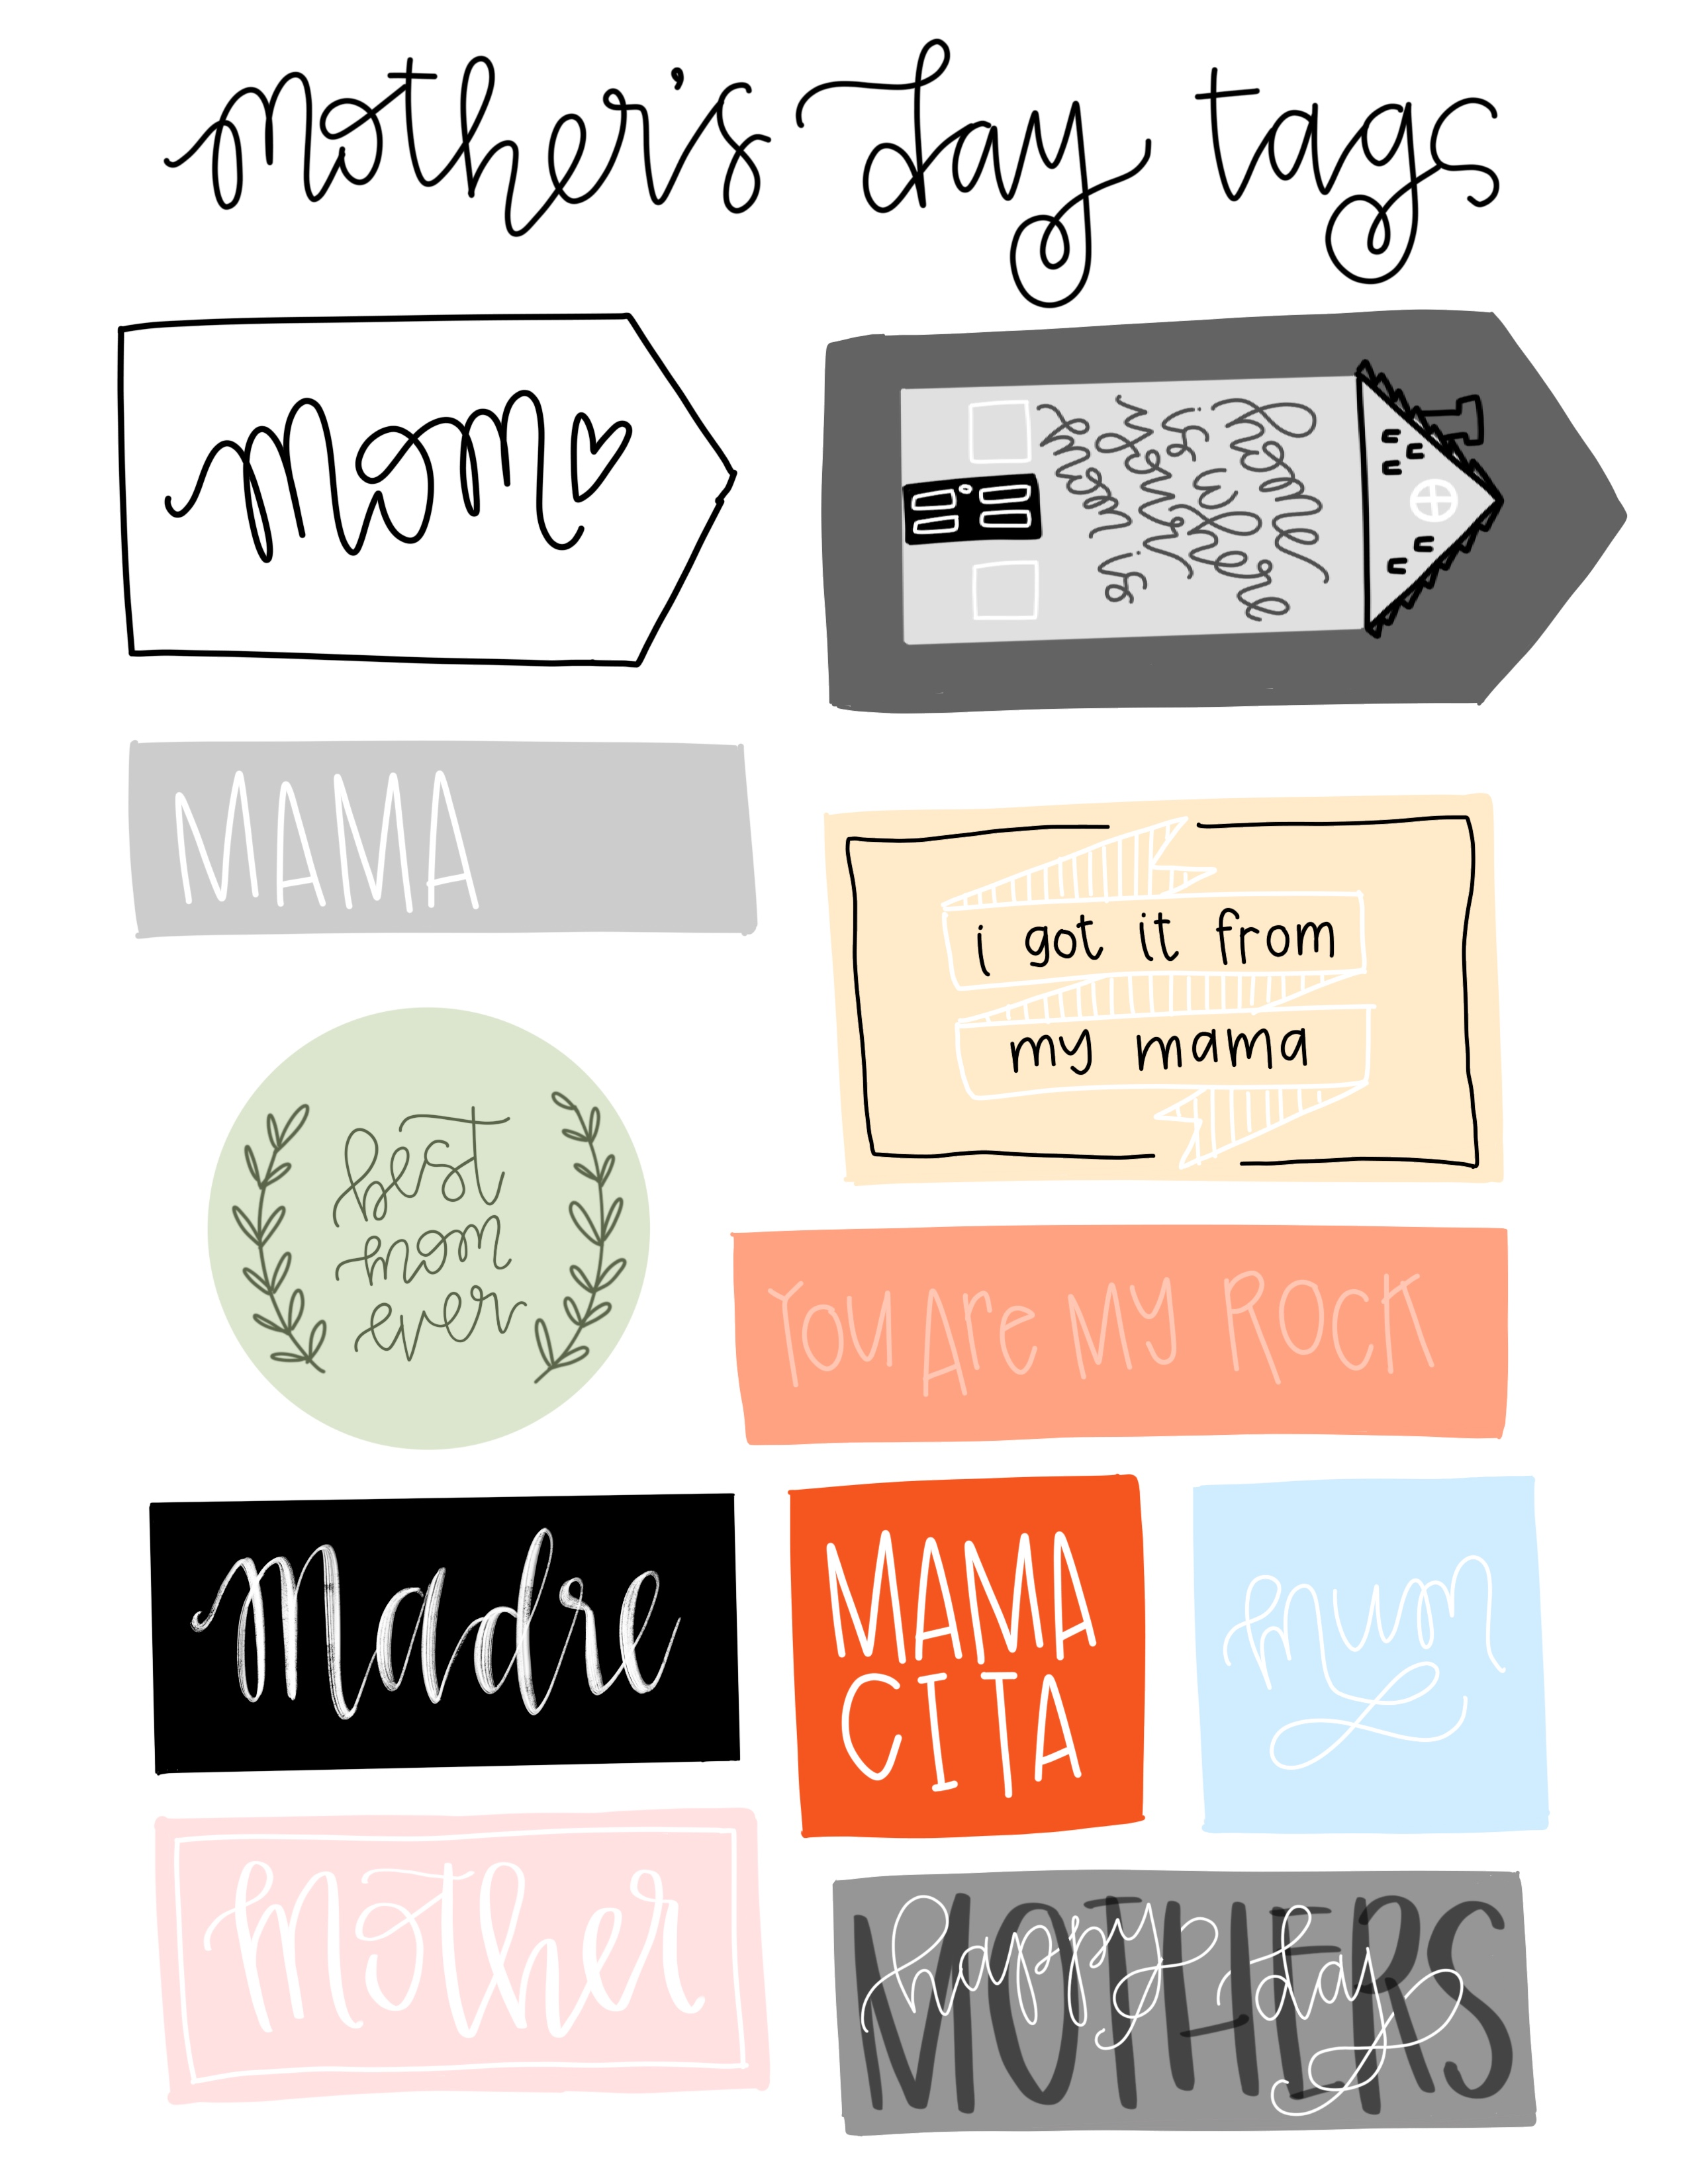 MothersDayTags